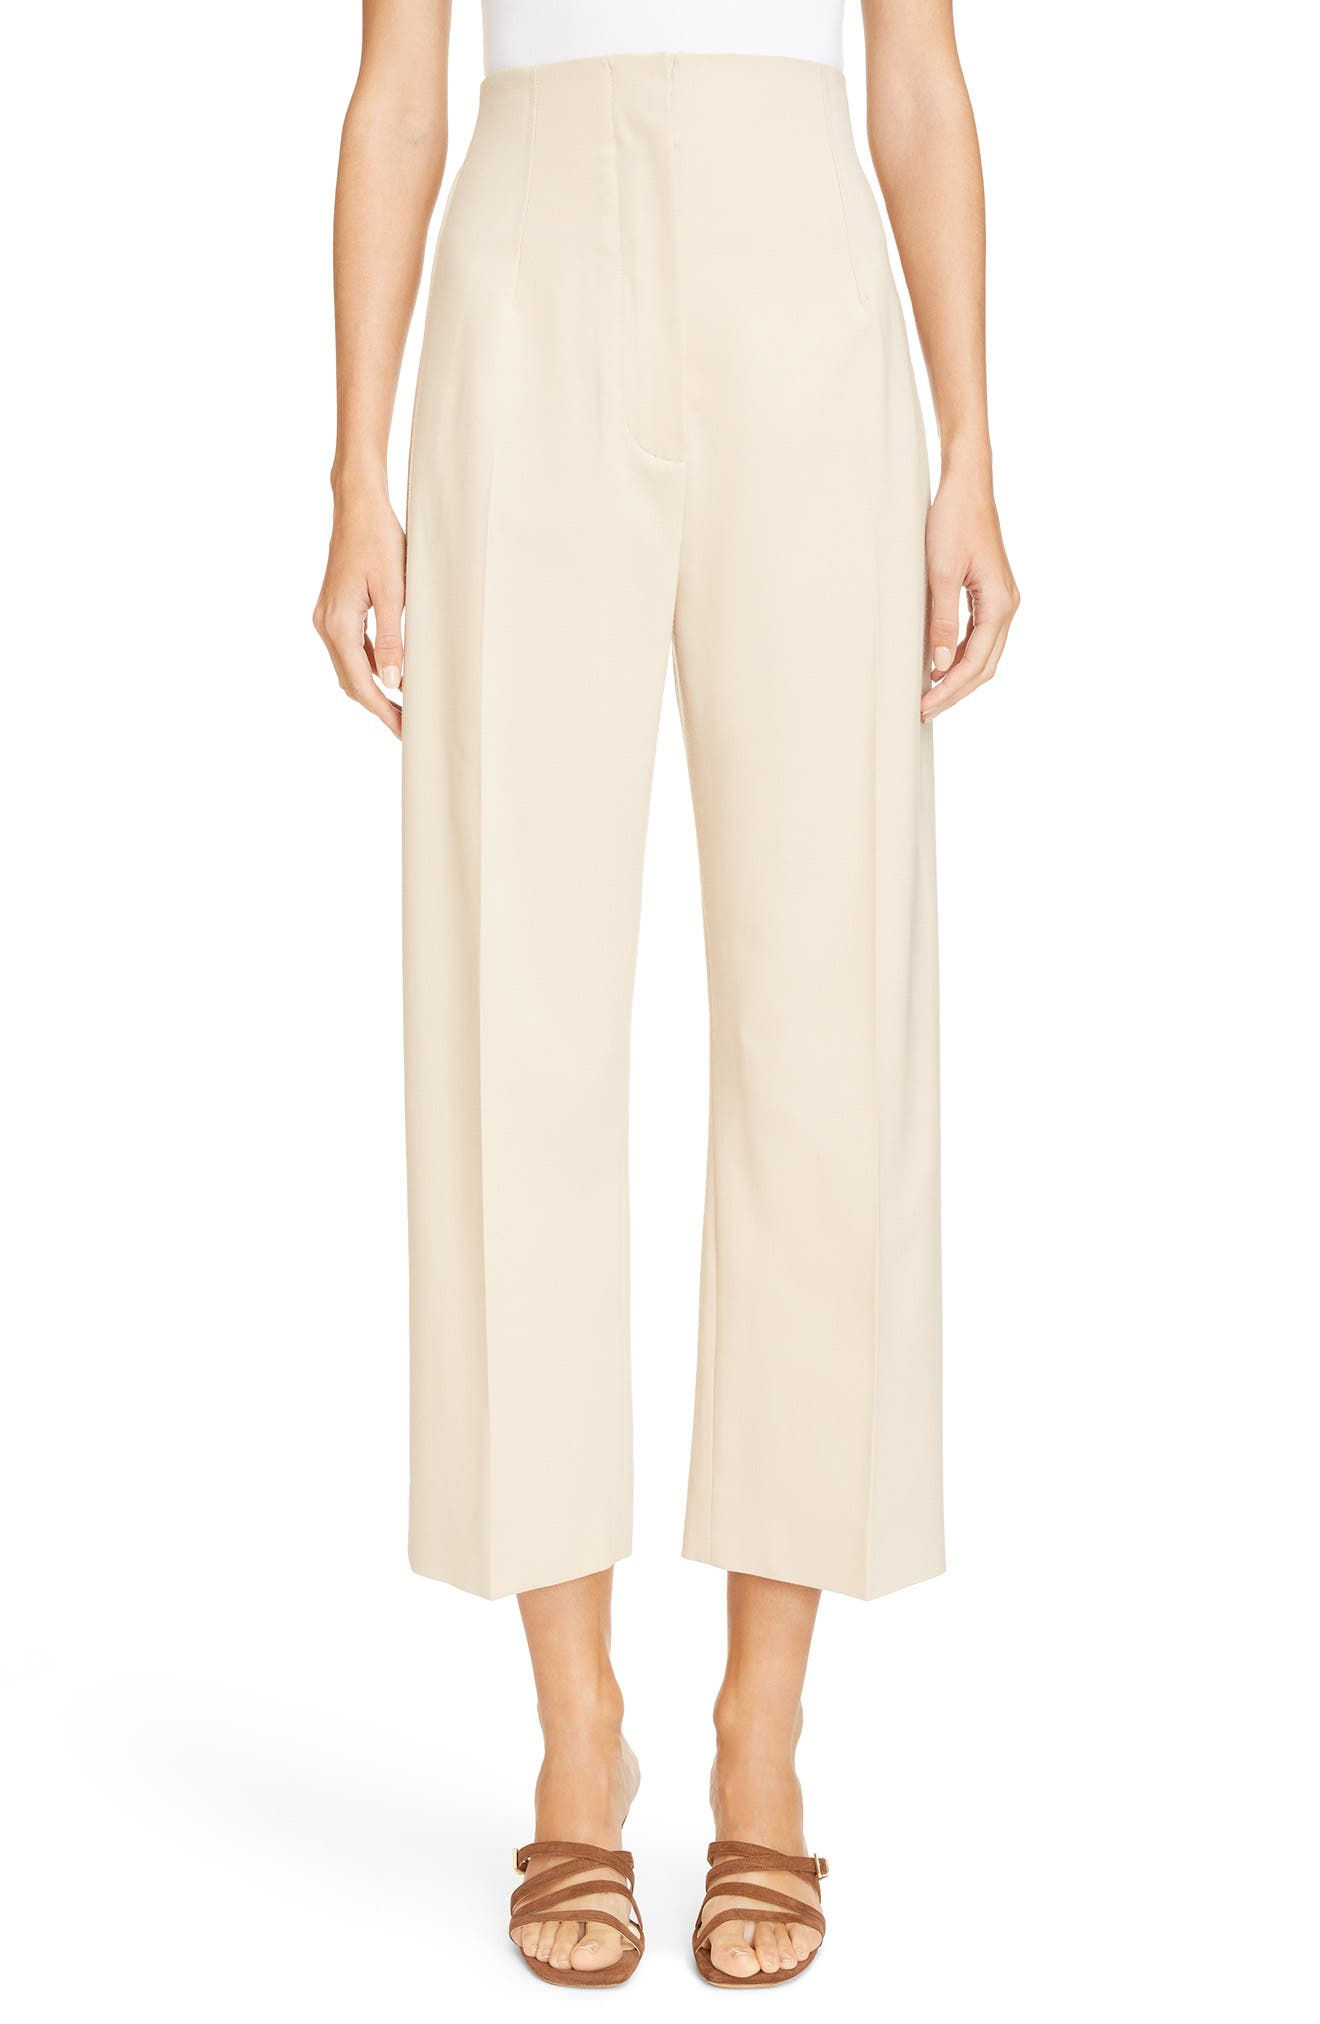 Jacquemus Le Pantalon Droit High Waist Crop Pants